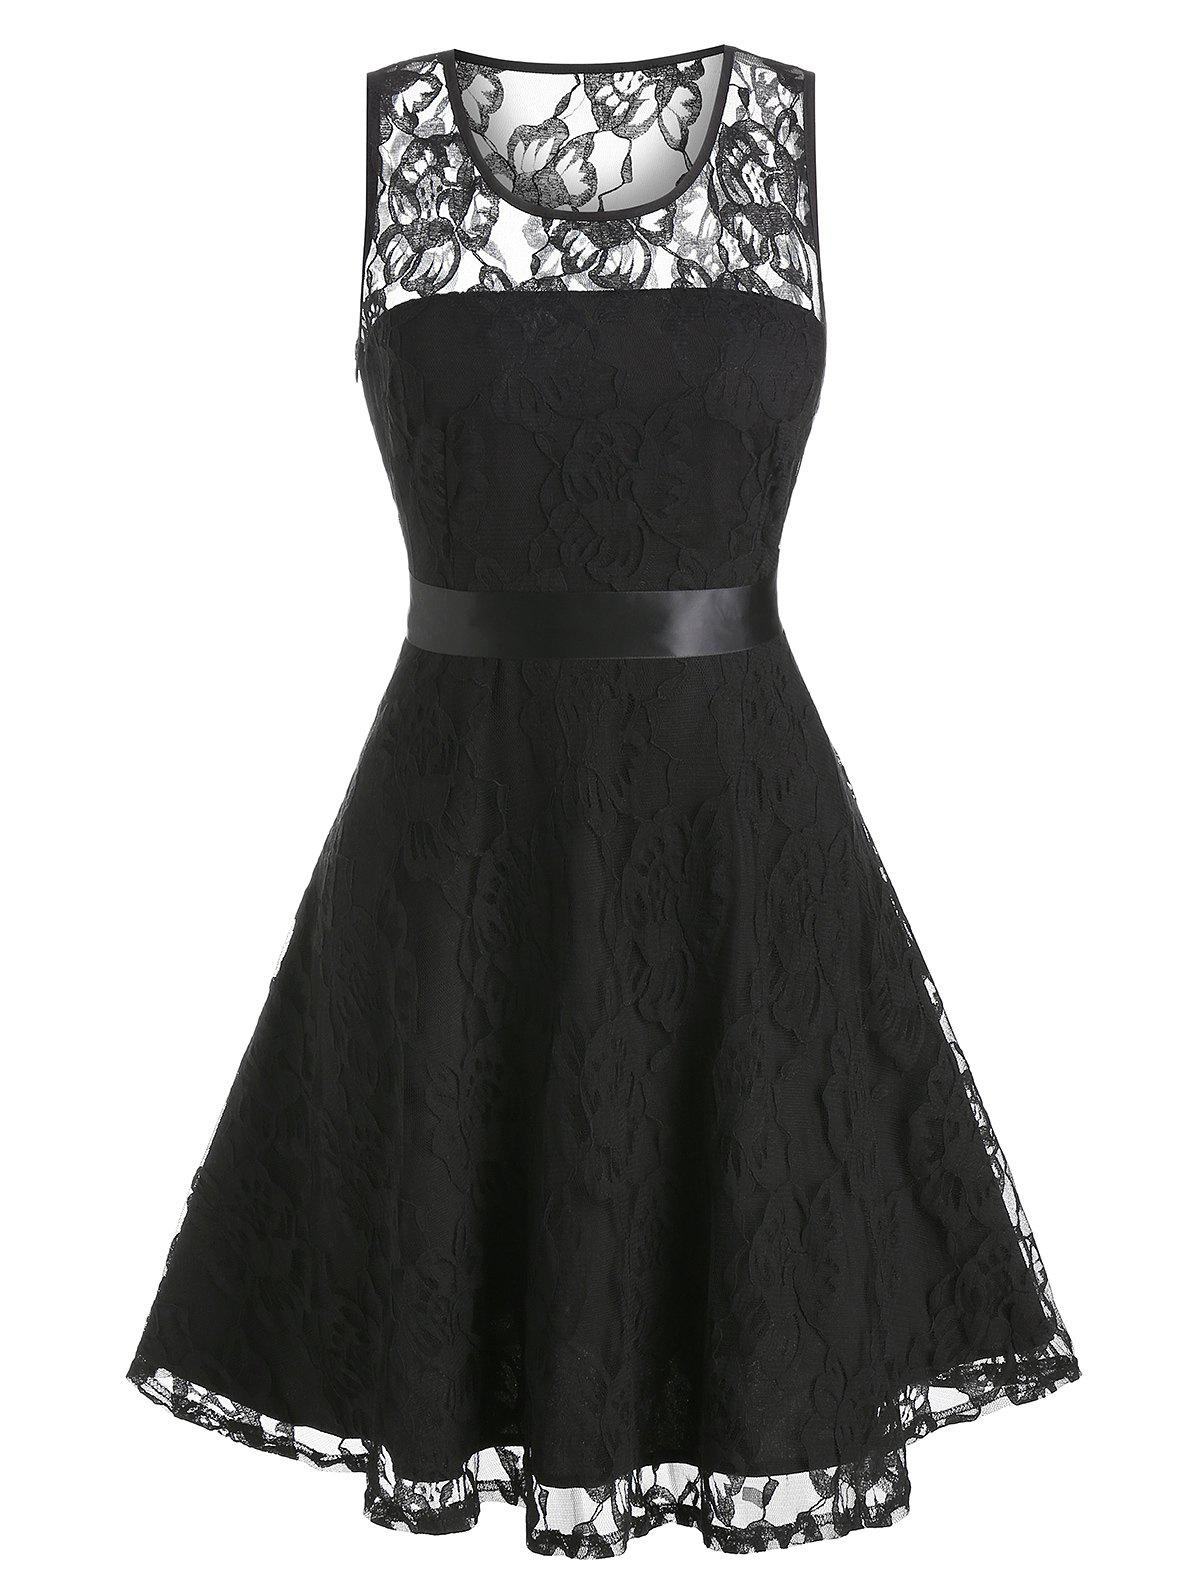 Floral Fit And Flare Lace Party Dress - BLACK XL